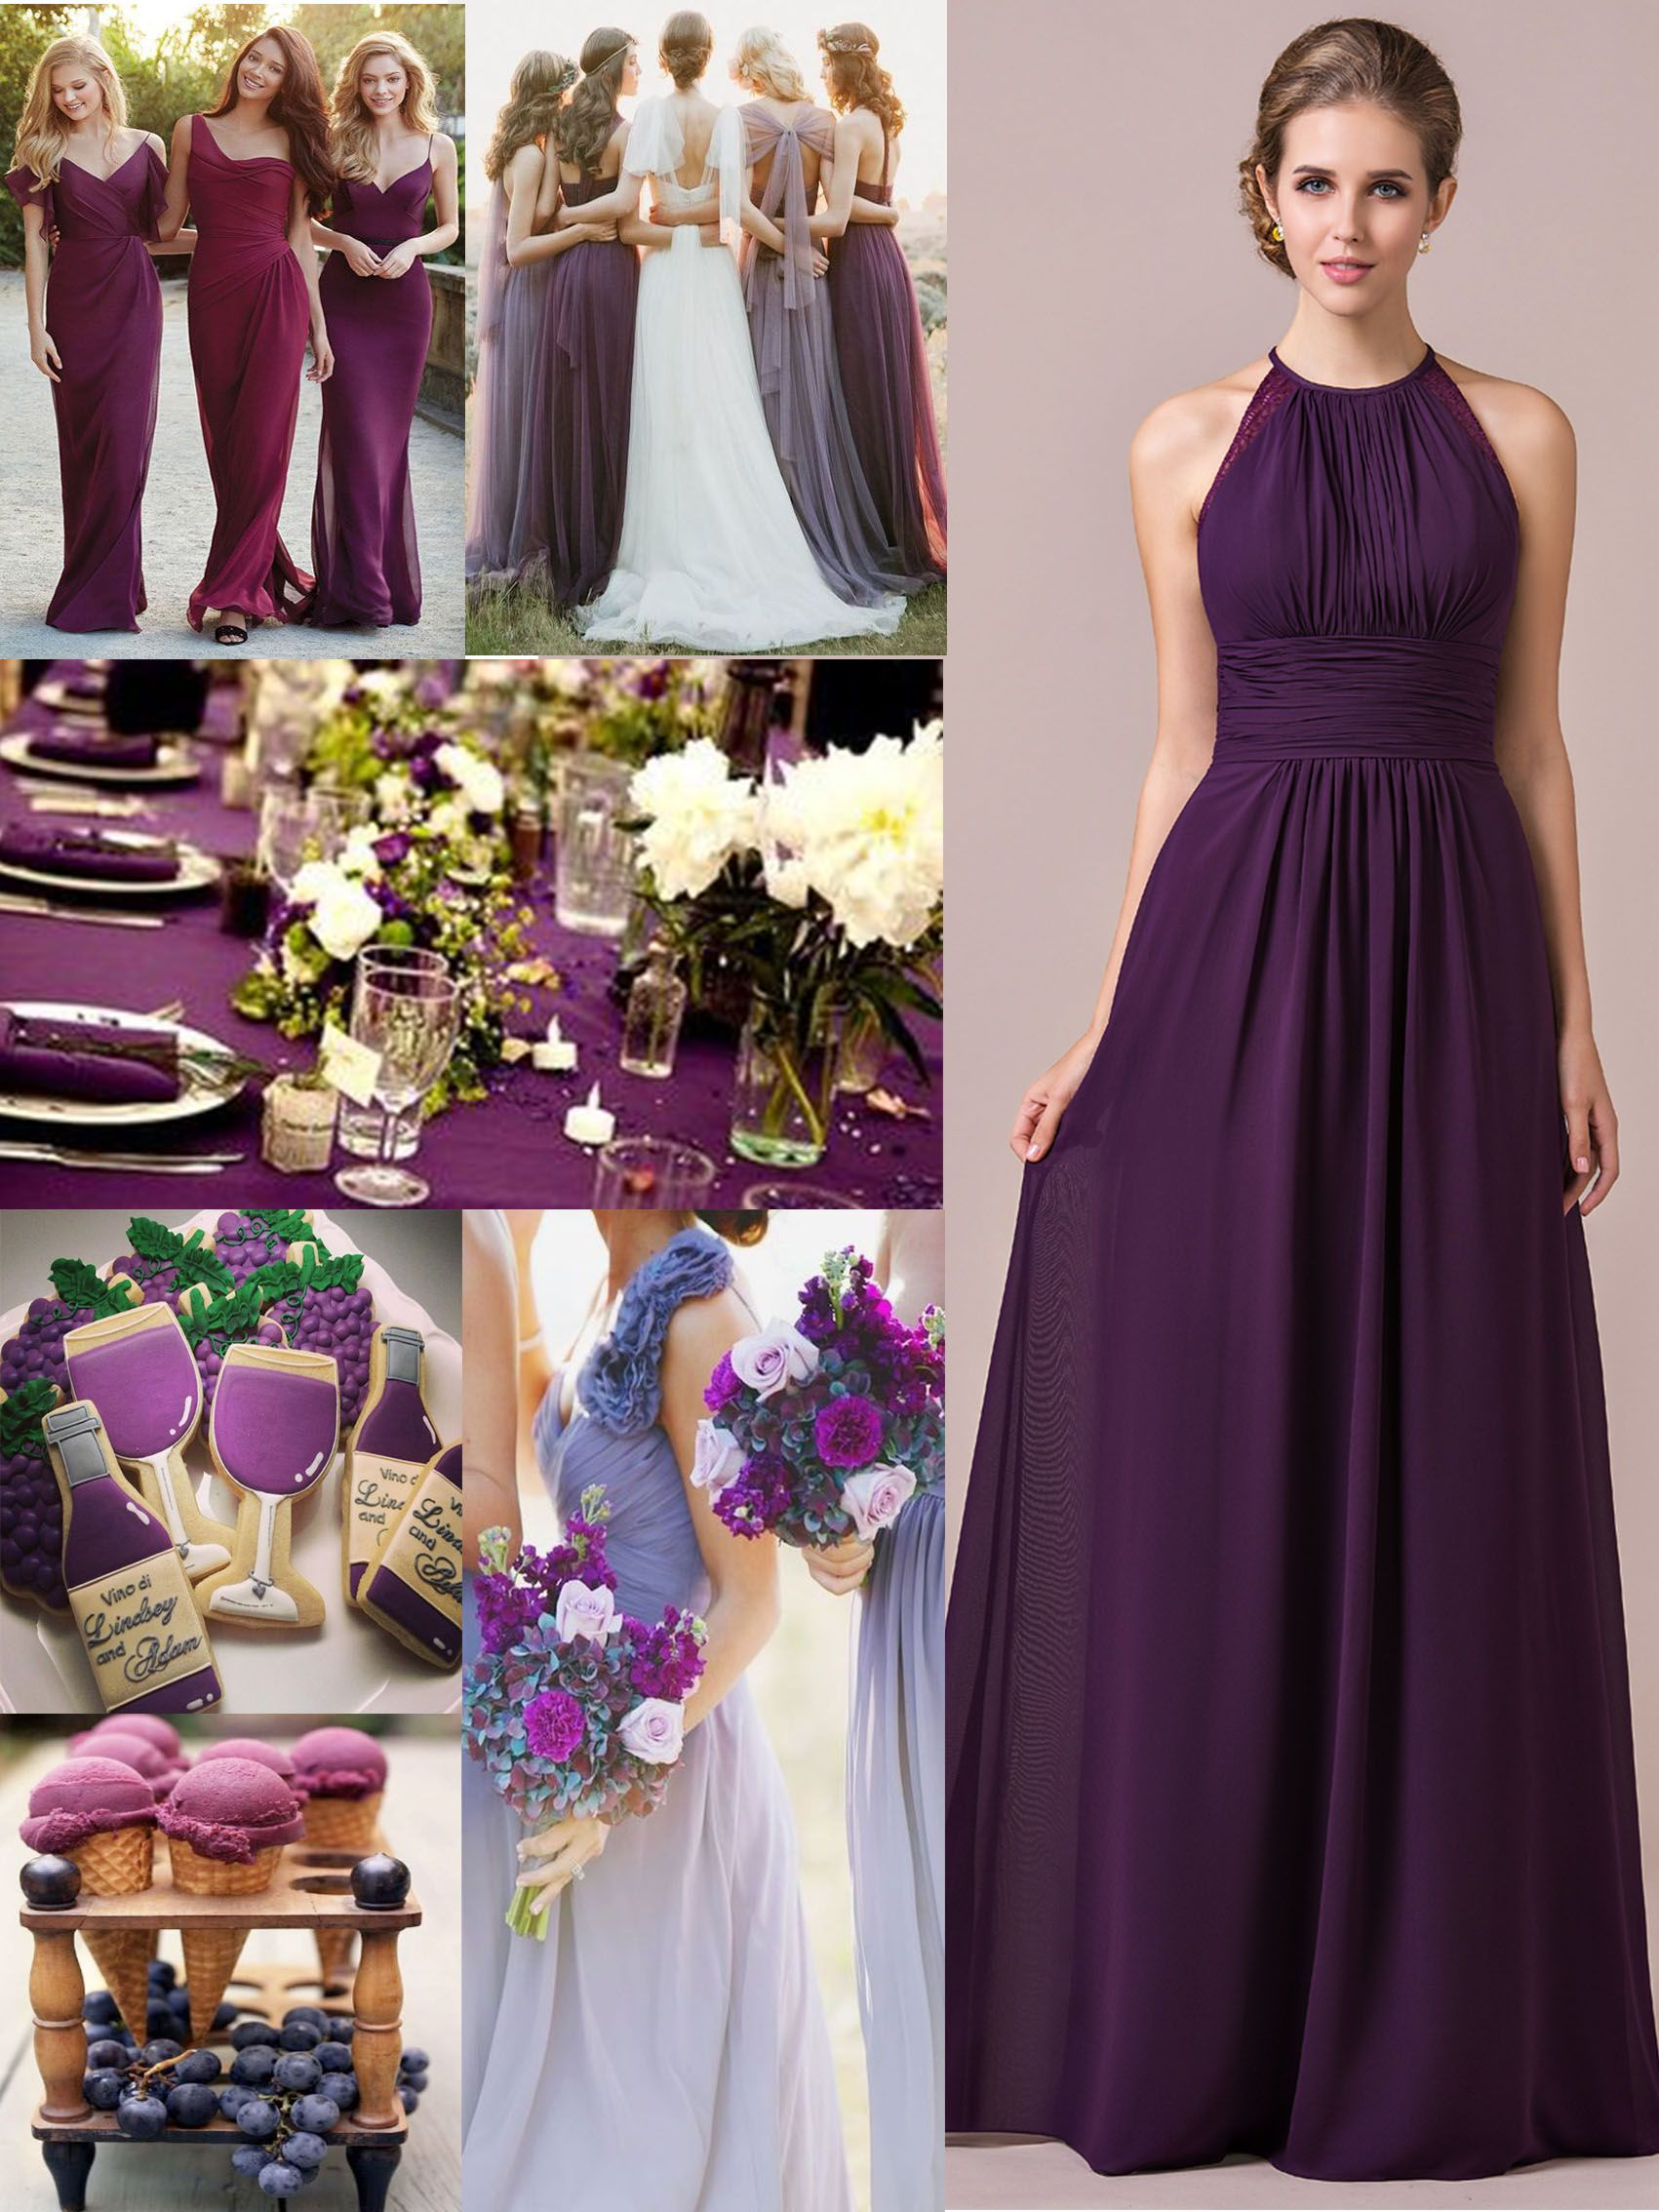 afa6f7bcfb Grape bridesmaid dress,the 2016 most popular bridesmaid dress color.  #JJsHouse #JJsHouseBridesmaidDress #GrapeBridesmaidDress